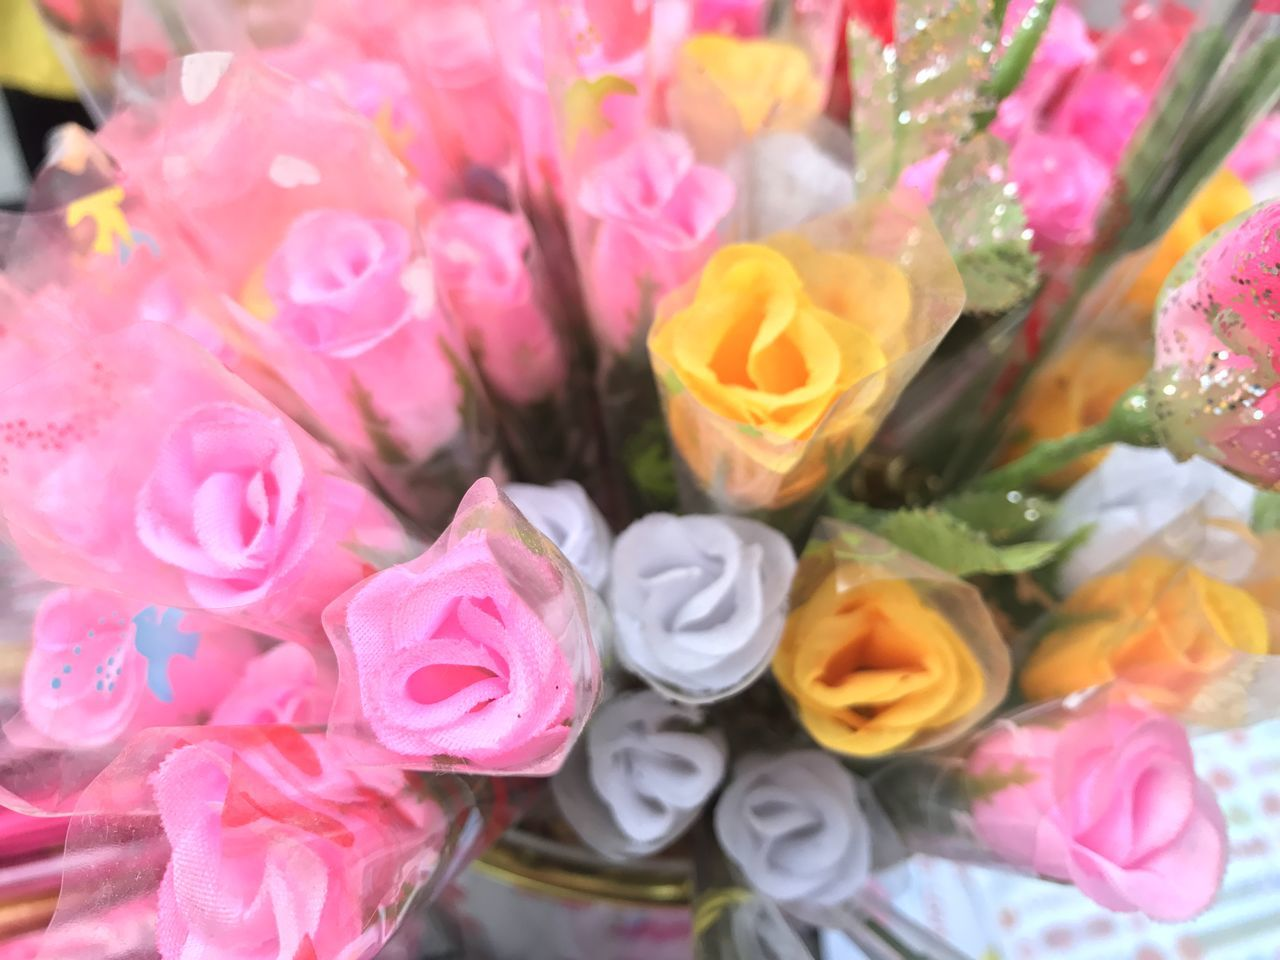 flower, pink color, rose - flower, petal, no people, close-up, multi colored, fragility, freshness, sweet food, flower head, nature, beauty in nature, day, indoors